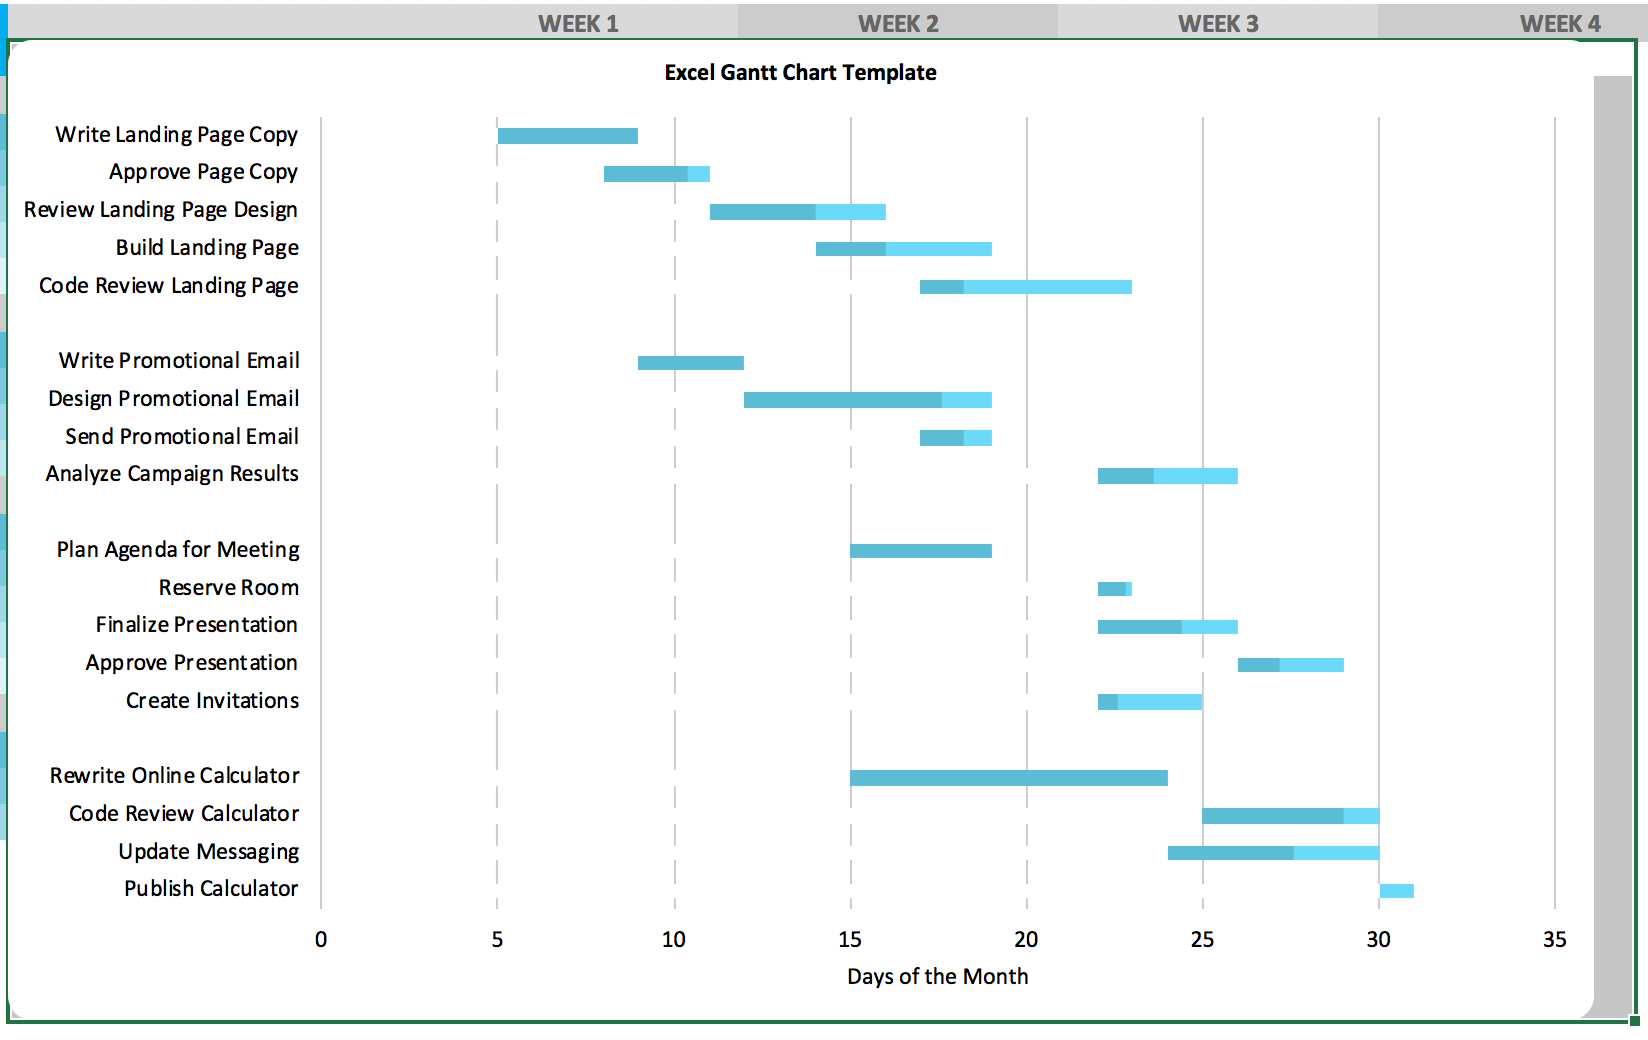 Free Gantt Chart Excel Template: Download Now | Teamgantt To Gantt Chart Templates Excel 2010